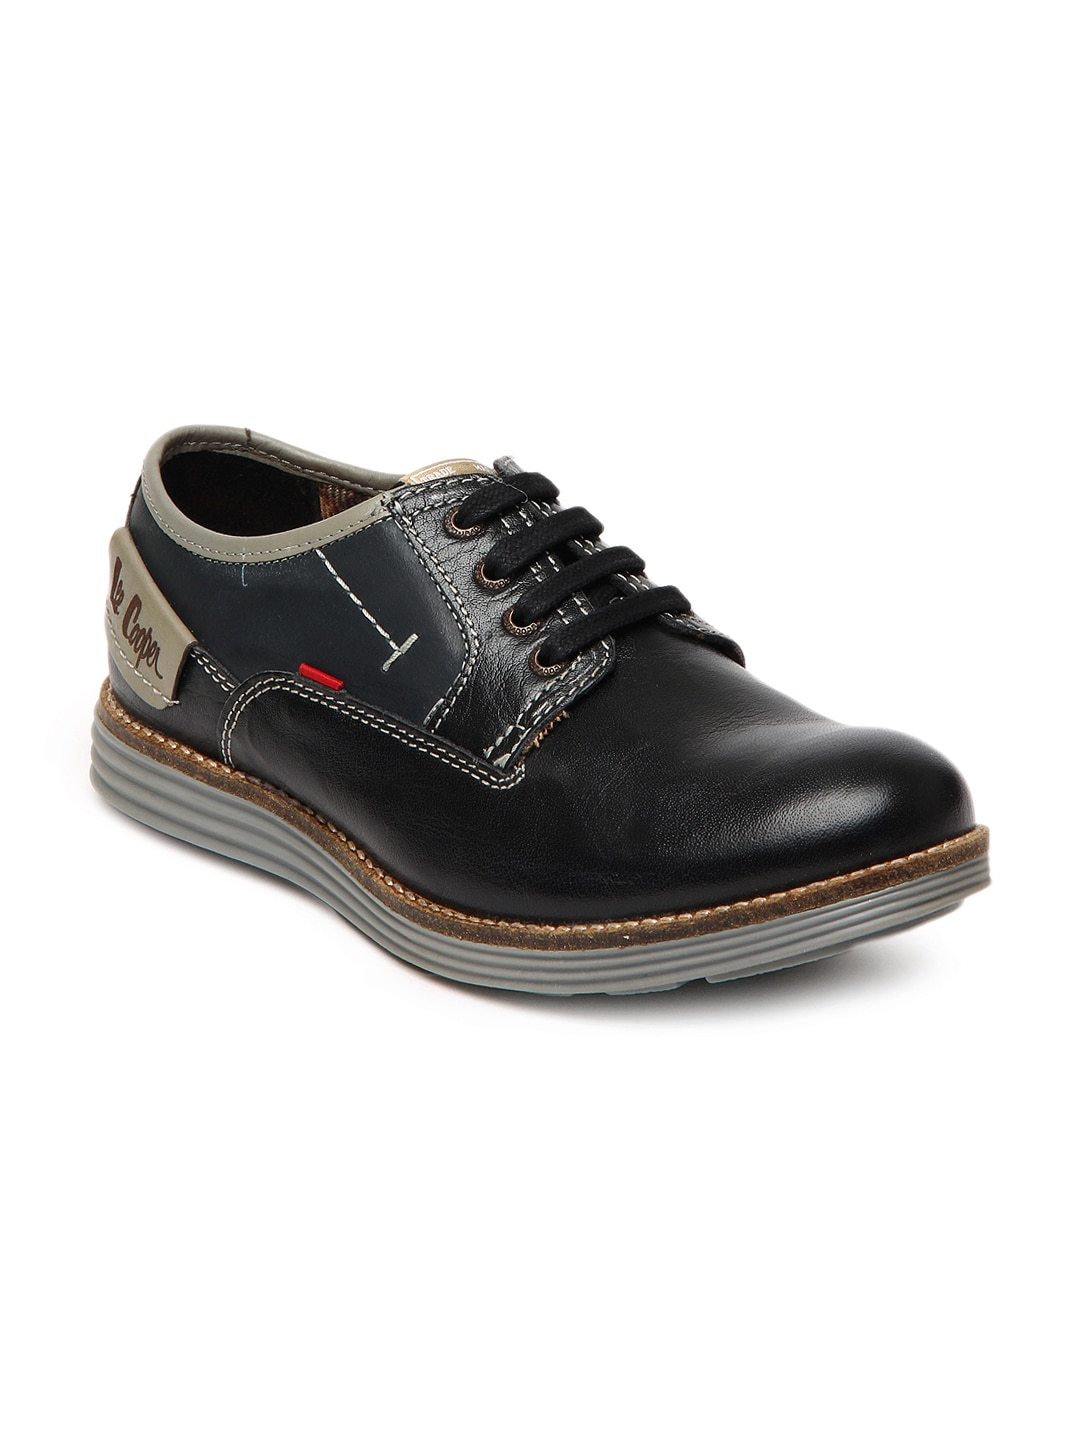 Lee Cooper Casual Leather Shoes